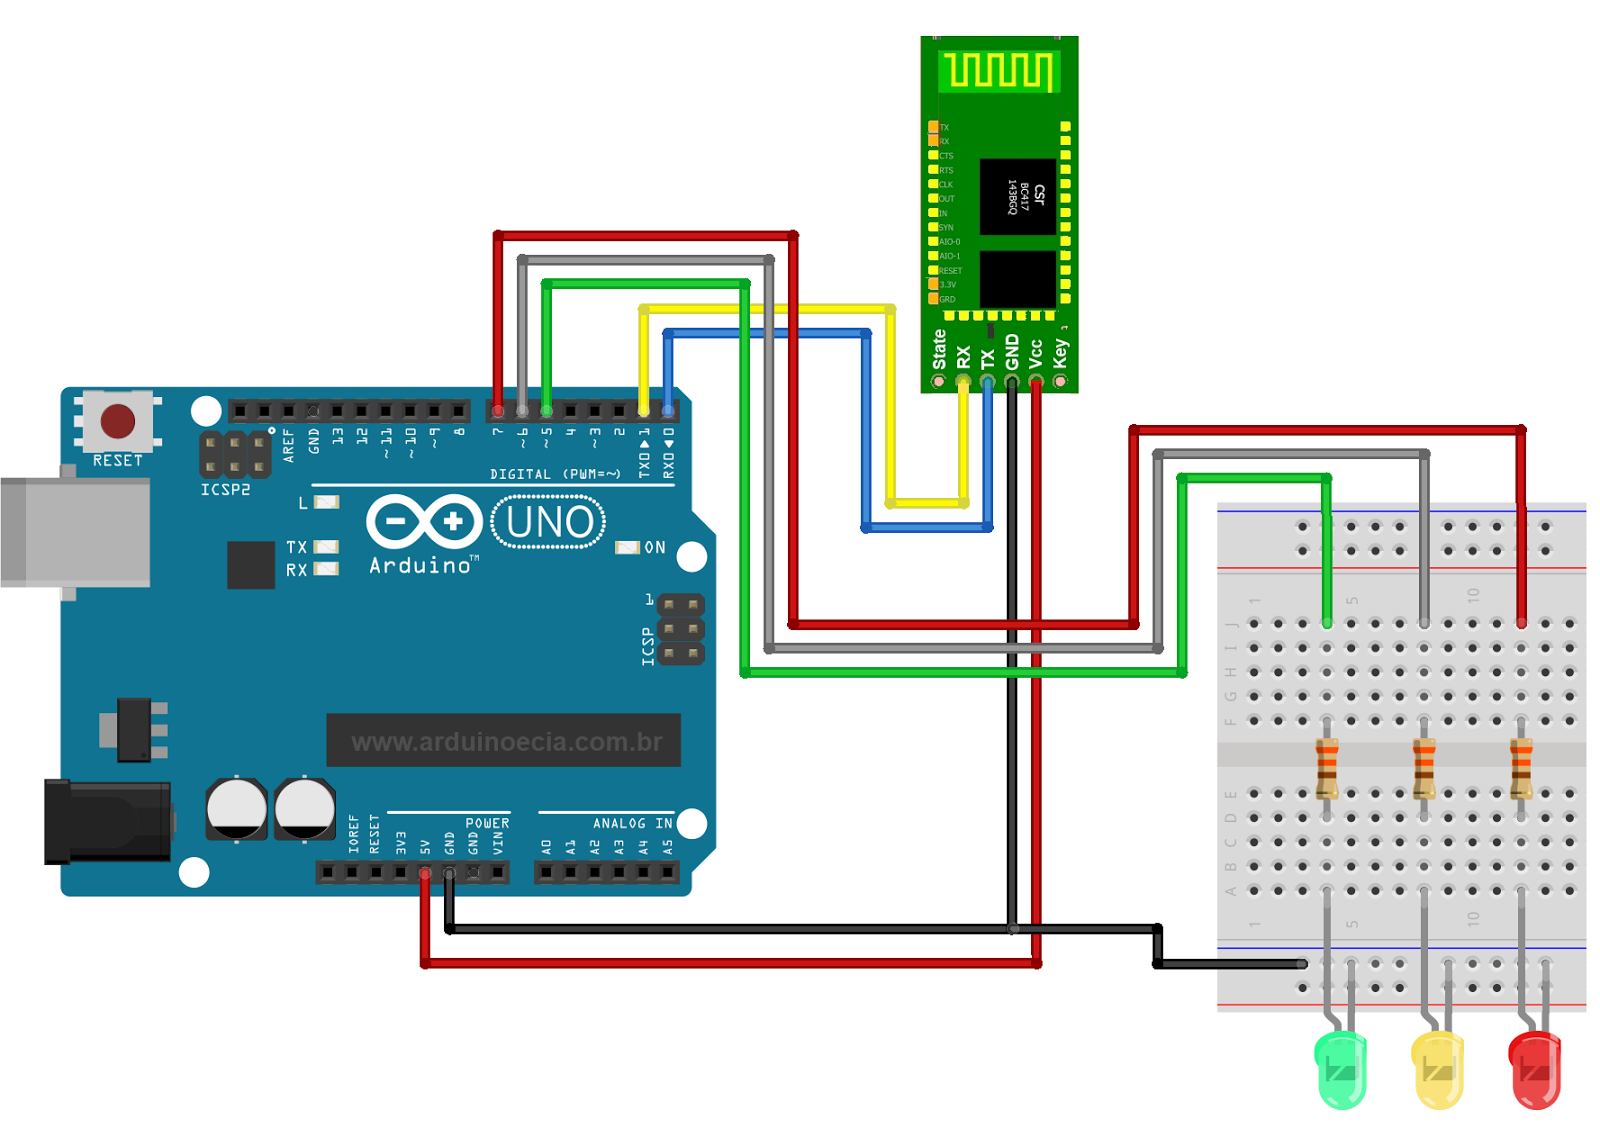 arduino - Lighting LED using keypad and microcontroller